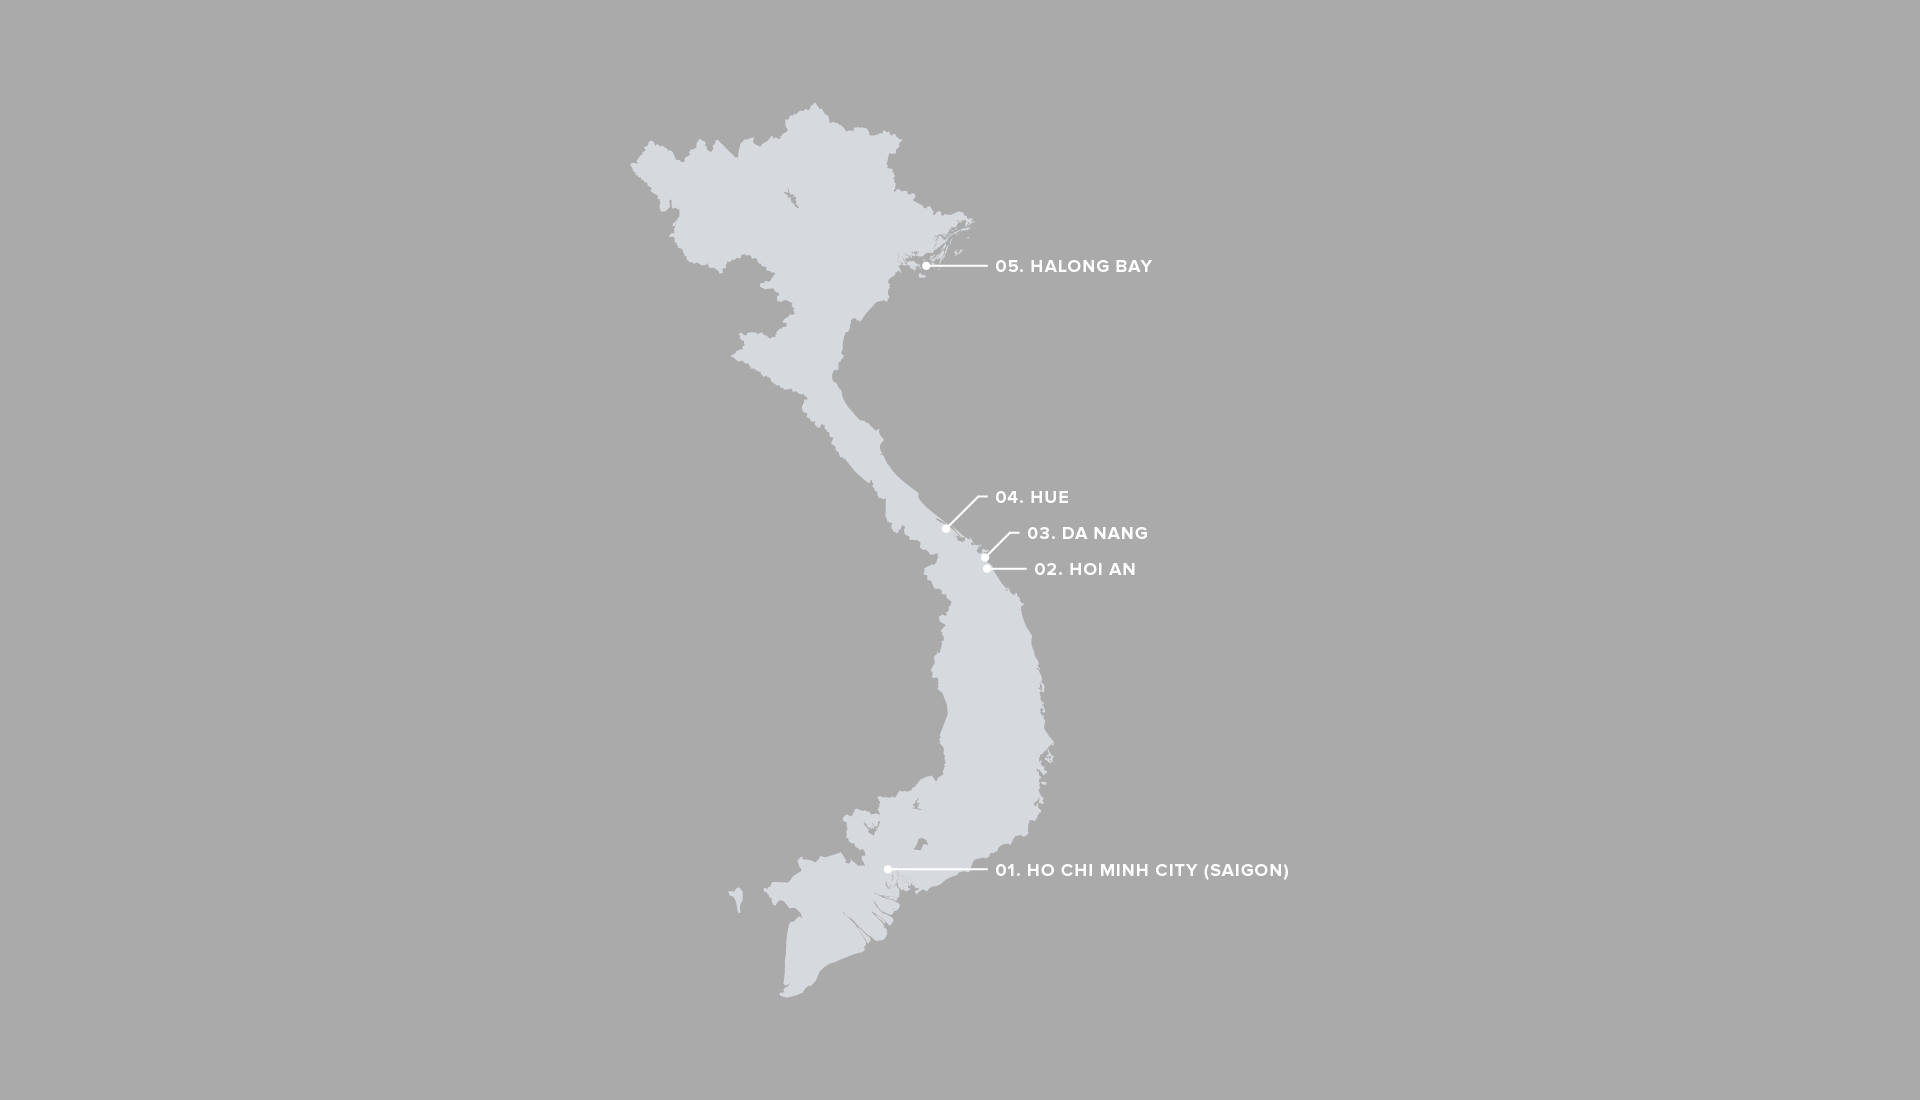 Illustrated map of Vietnam.